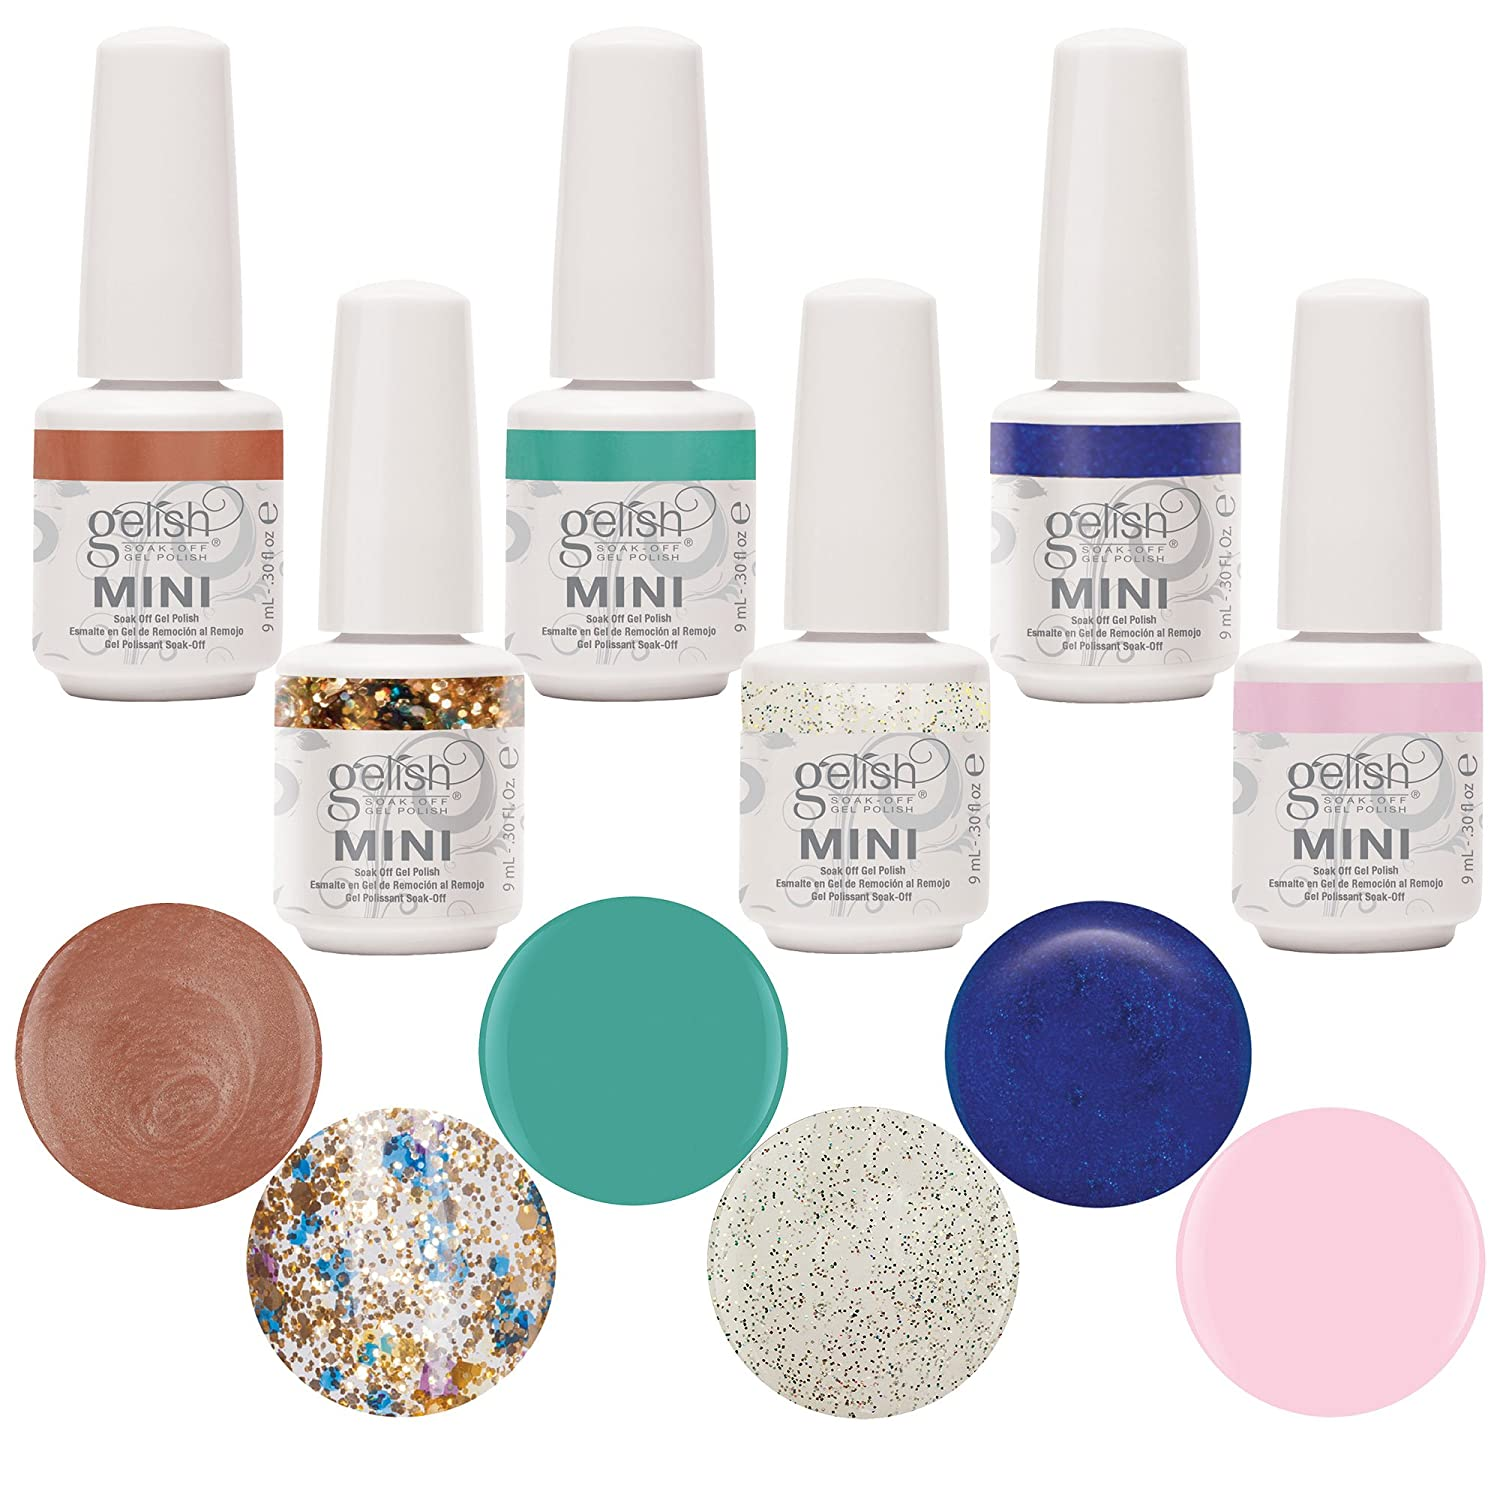 Amazon.com: Gelish Gel Nail Polish 9 ml Mini Bottles Sweet and Chic Sailor Kit (6 Pack): Health & Personal Care